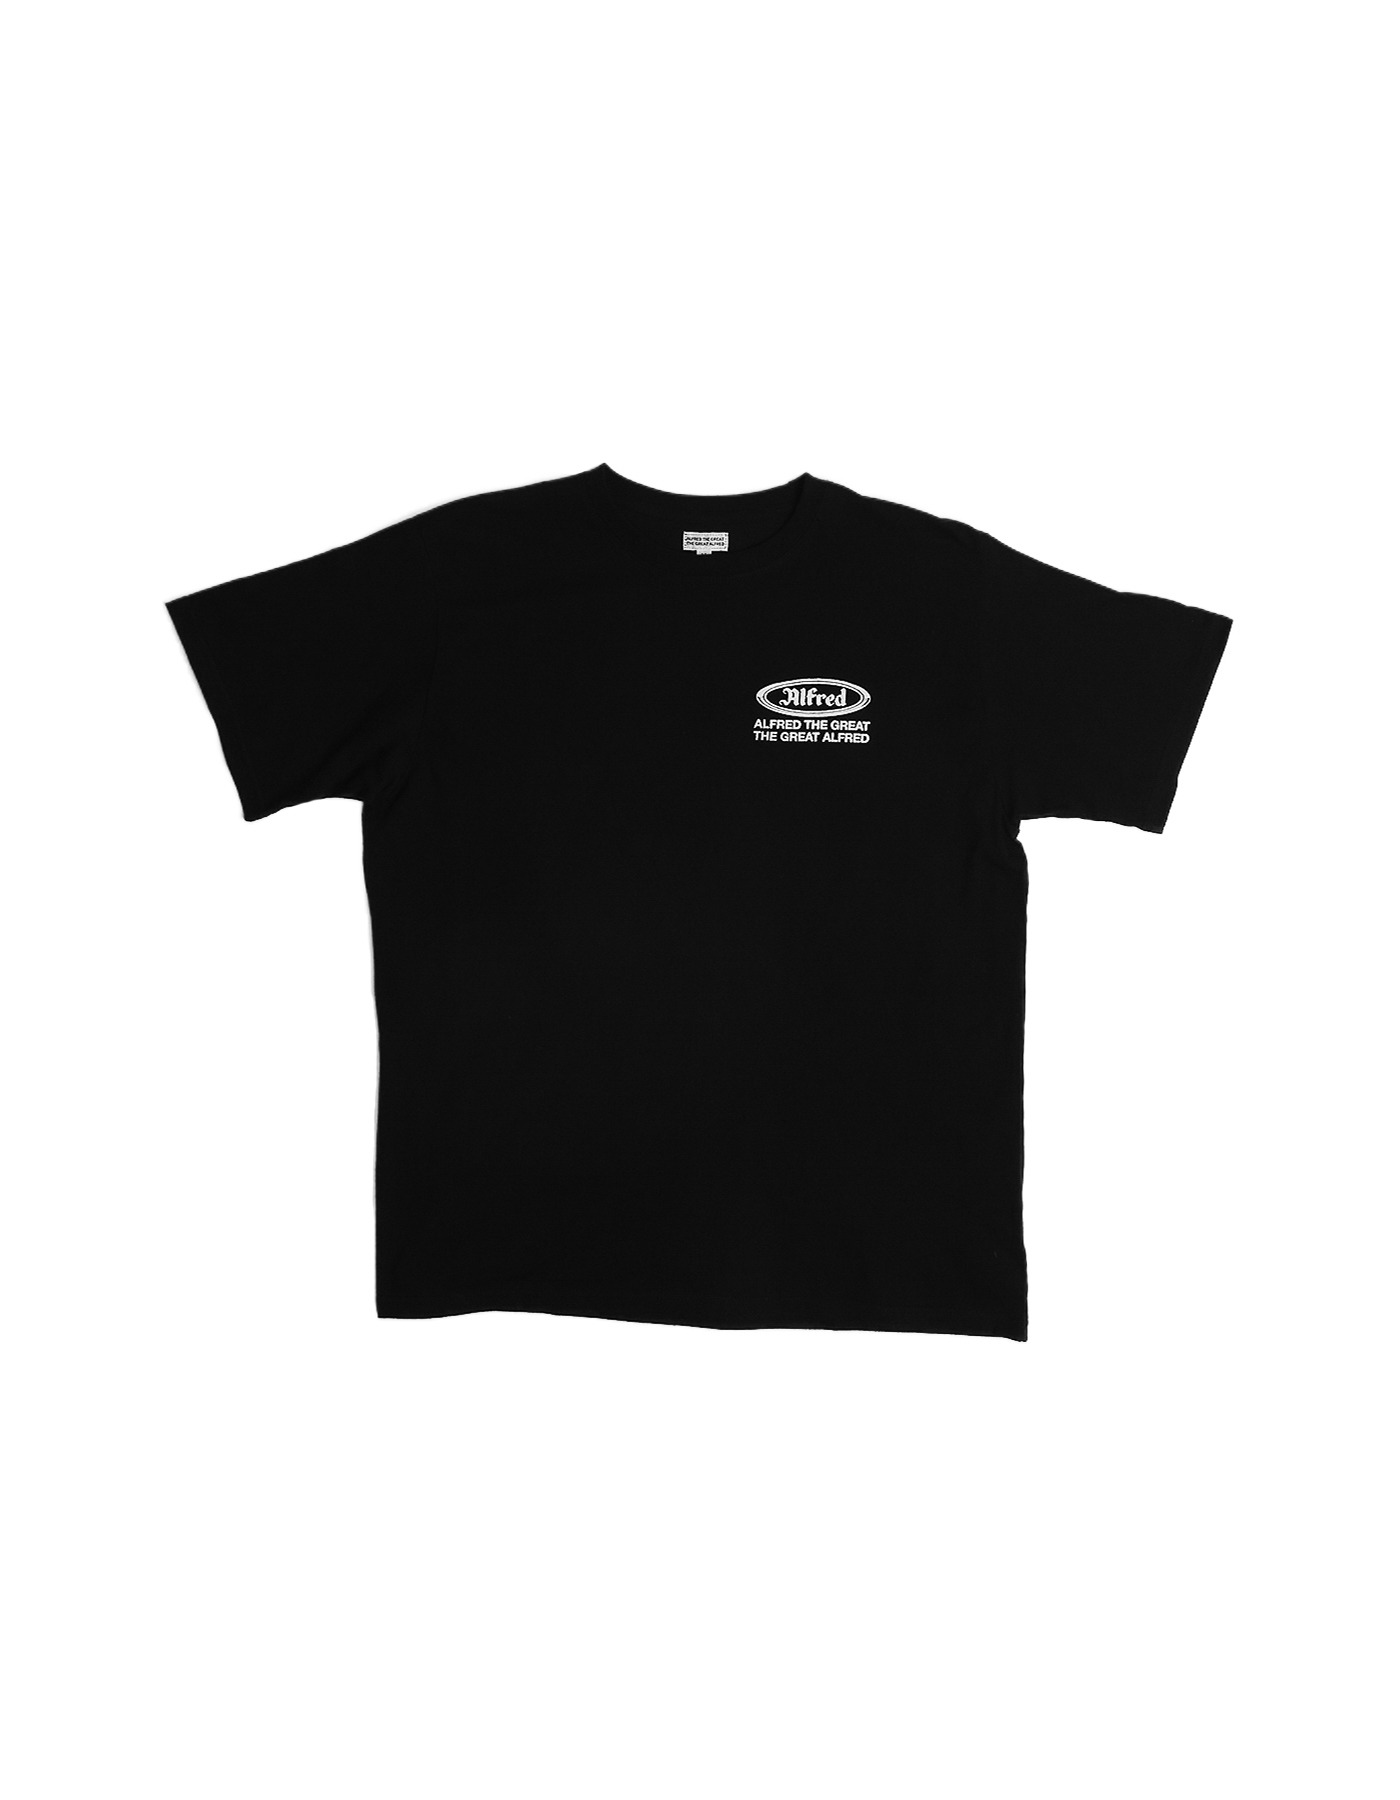 FRED OG T-SHIRTS / BLACK